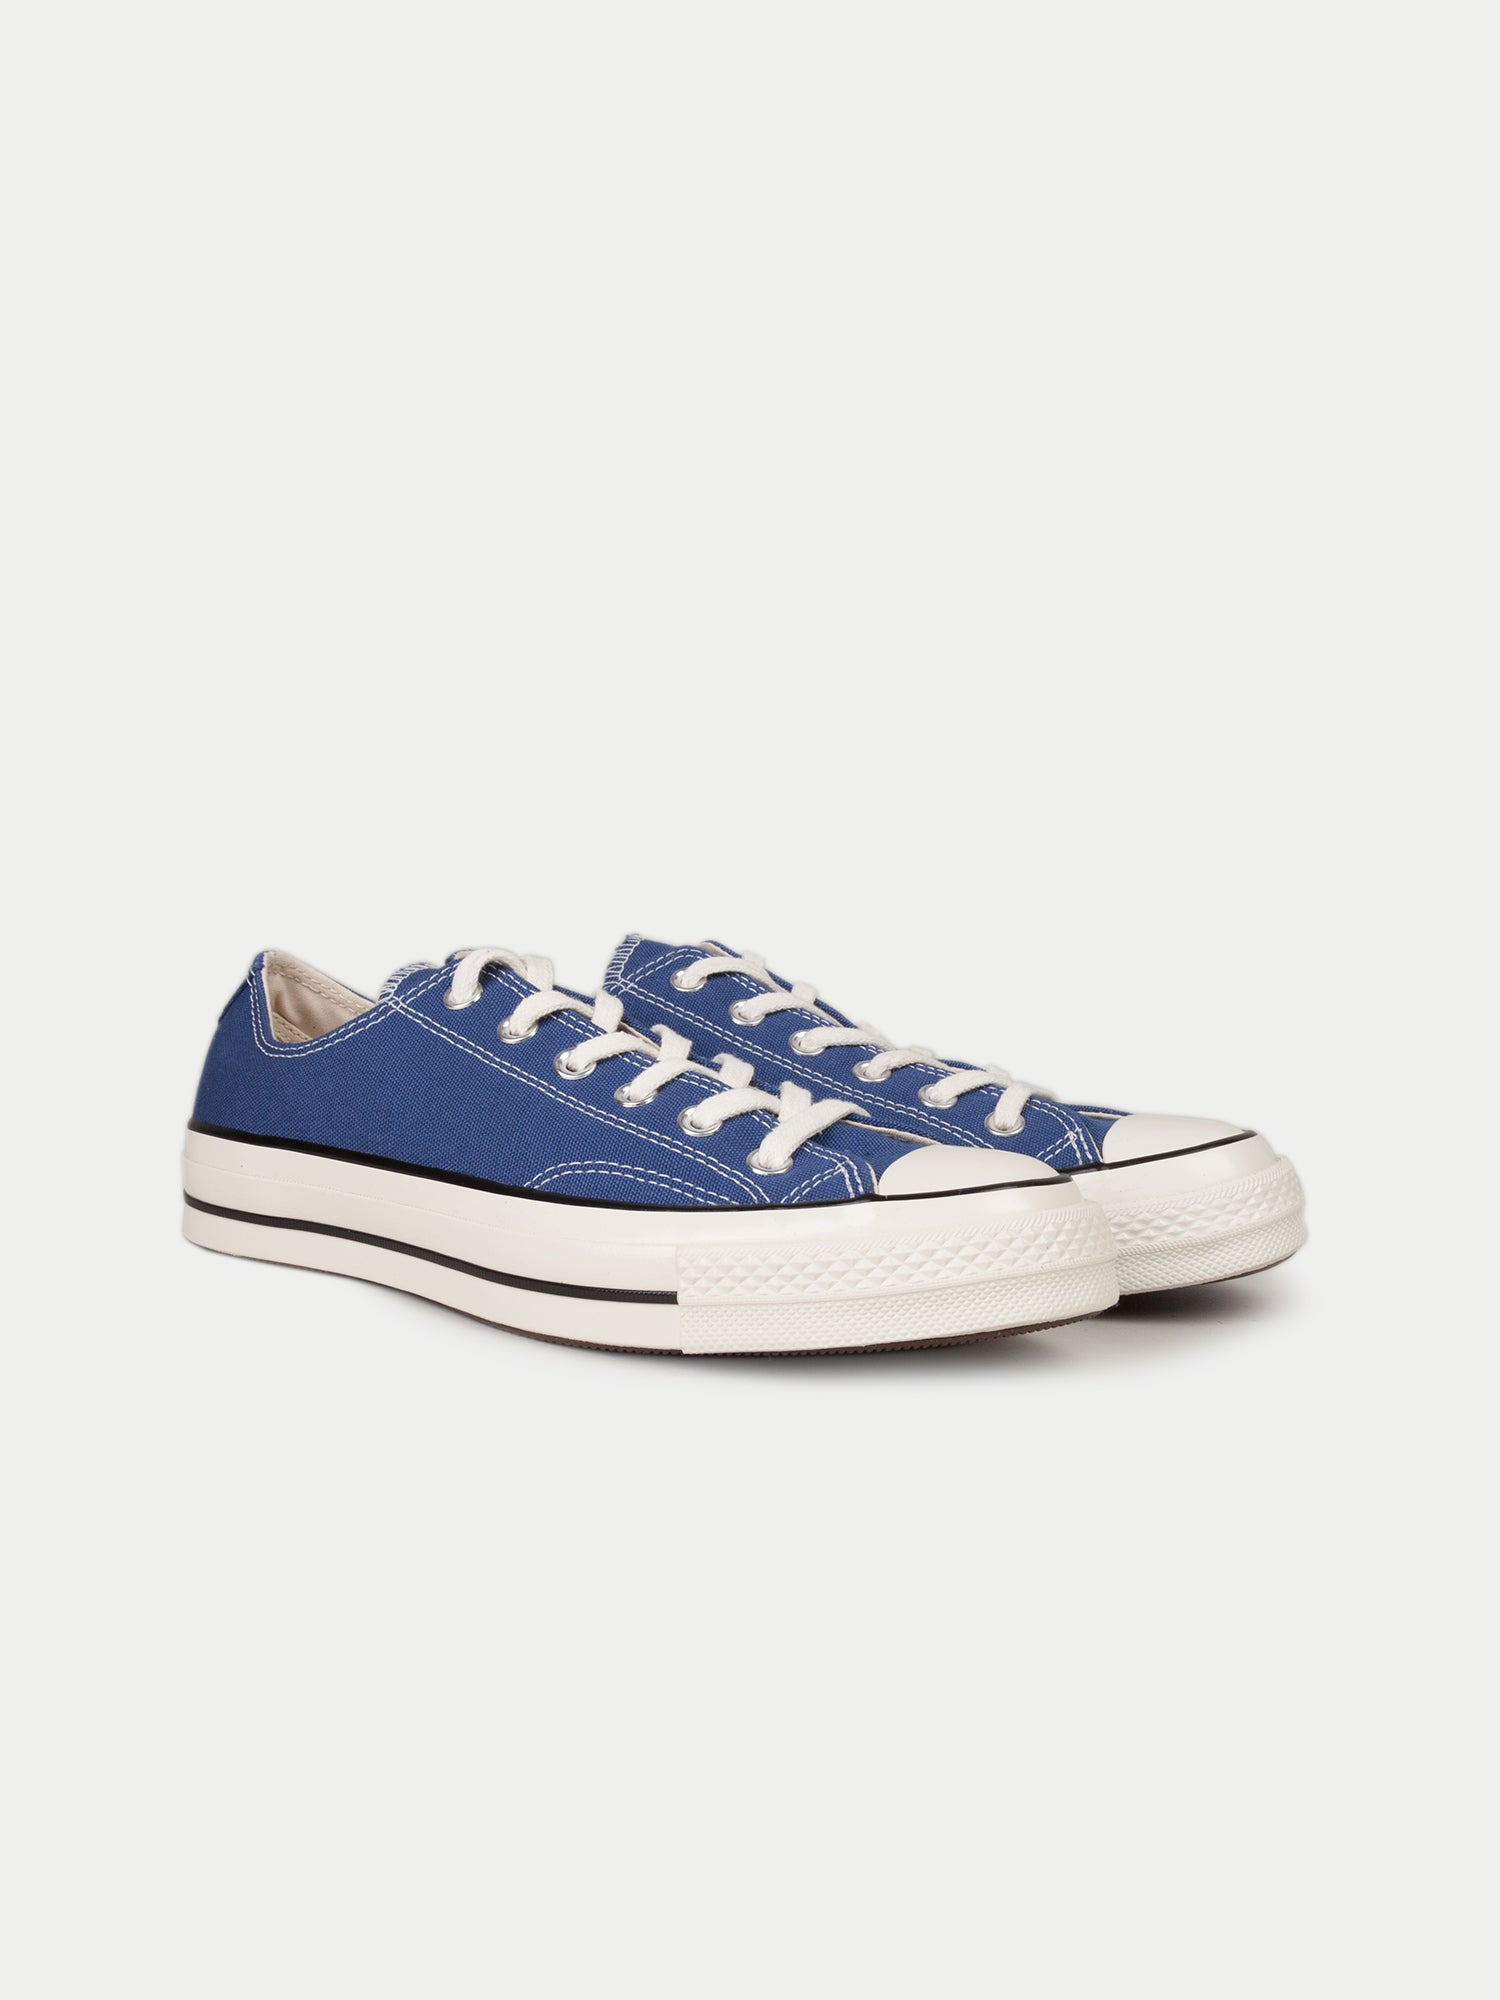 64b08d188b5d Converse-Chuck-Taylor-All-Star-70 -Ox- True-Navy.jpg v 1533815099